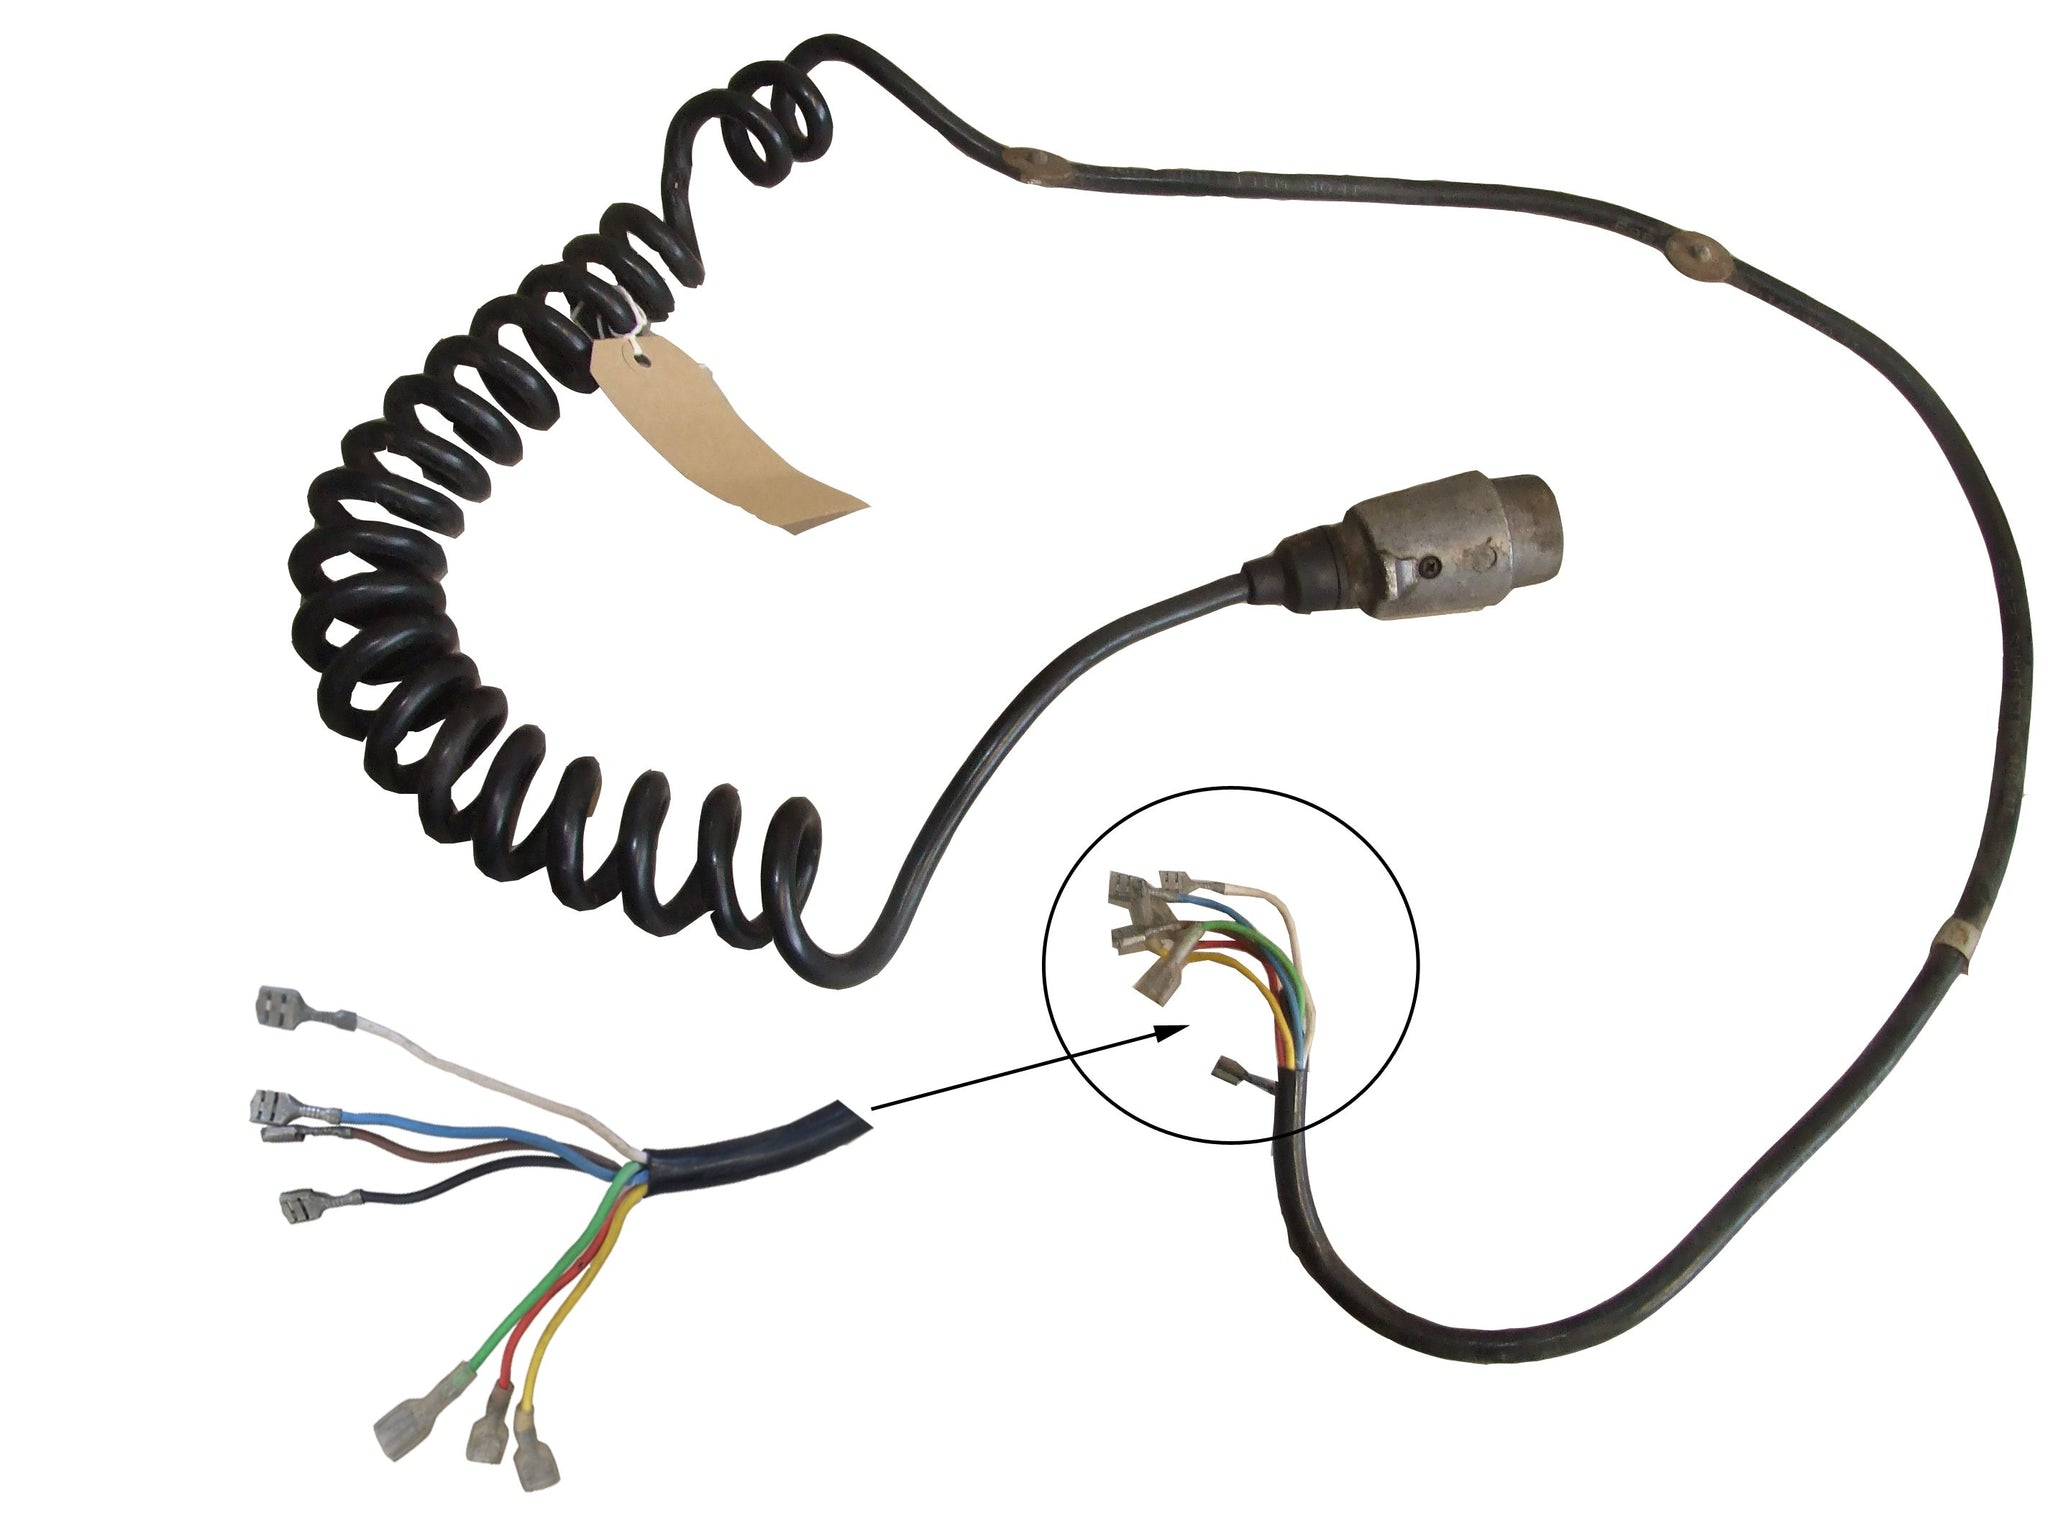 Terrific Car Trailer Wiring Harness 502T59 Weyschon Gmbh Wiring Database Ittabxeroyuccorg